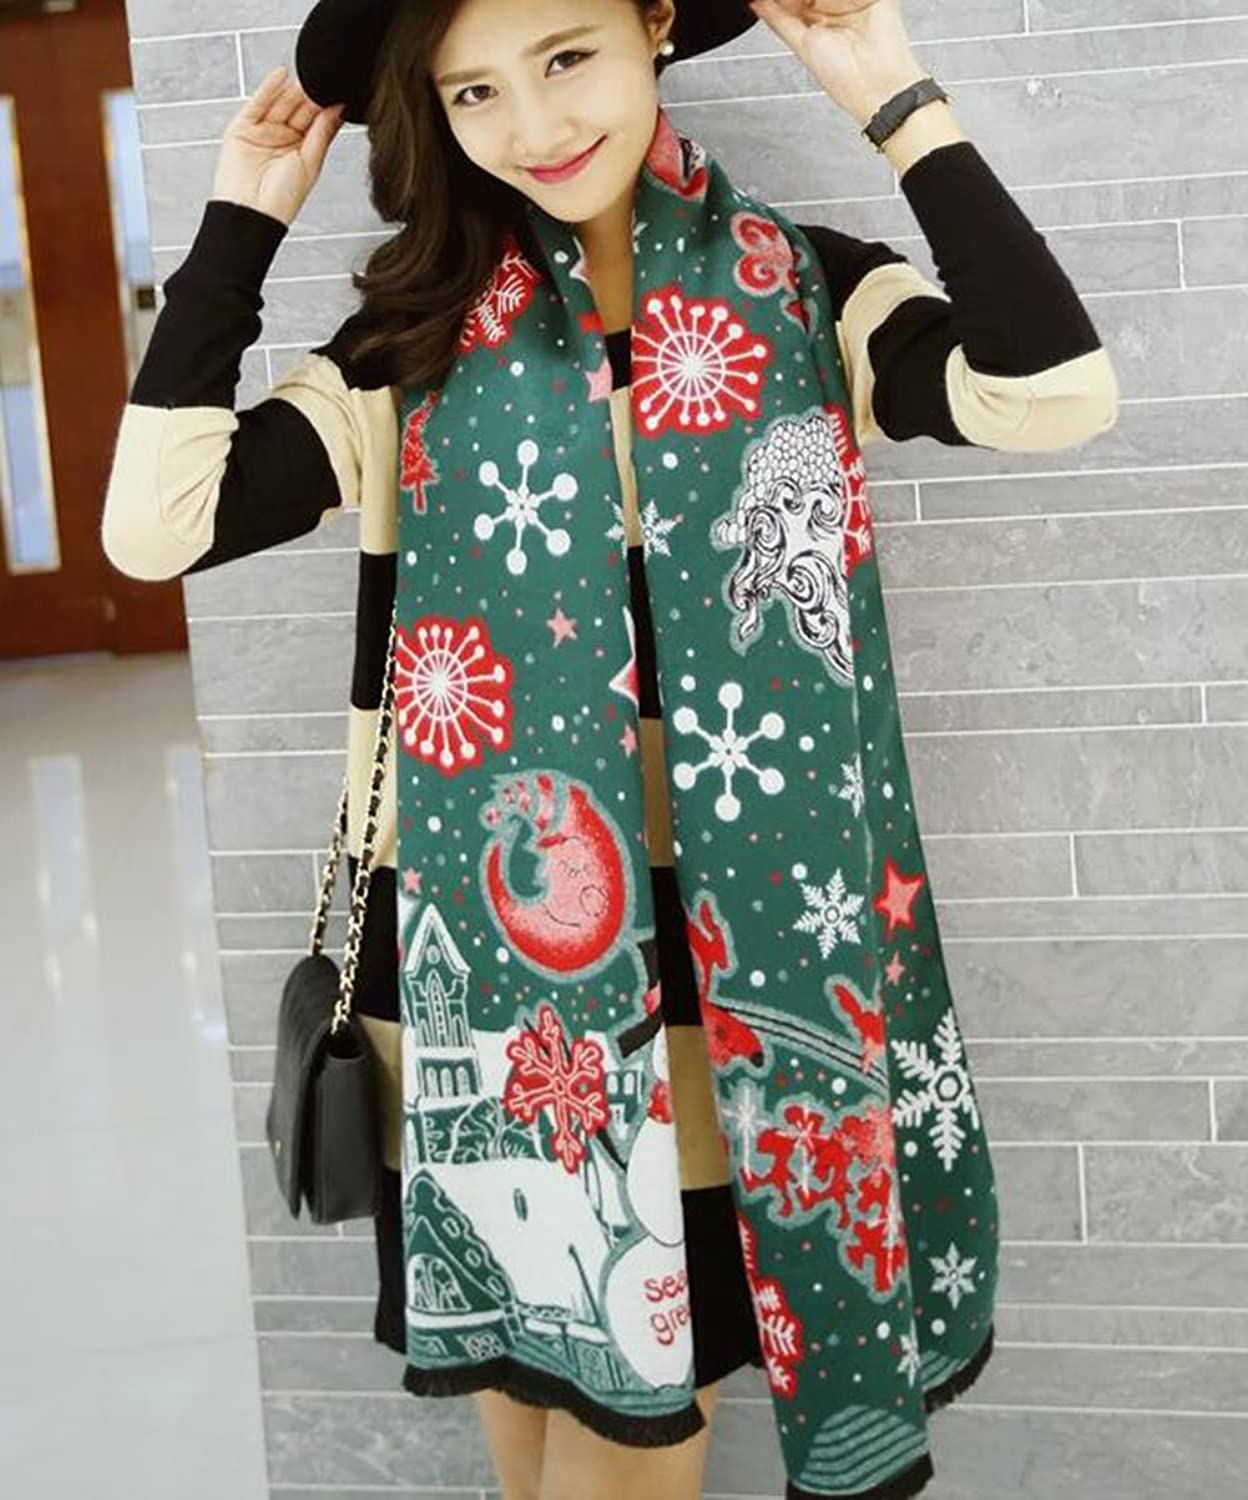 Freedi Cashmere Women Christmas Scarf Snowflake Scarf for Ladies Girls Christmas Gift